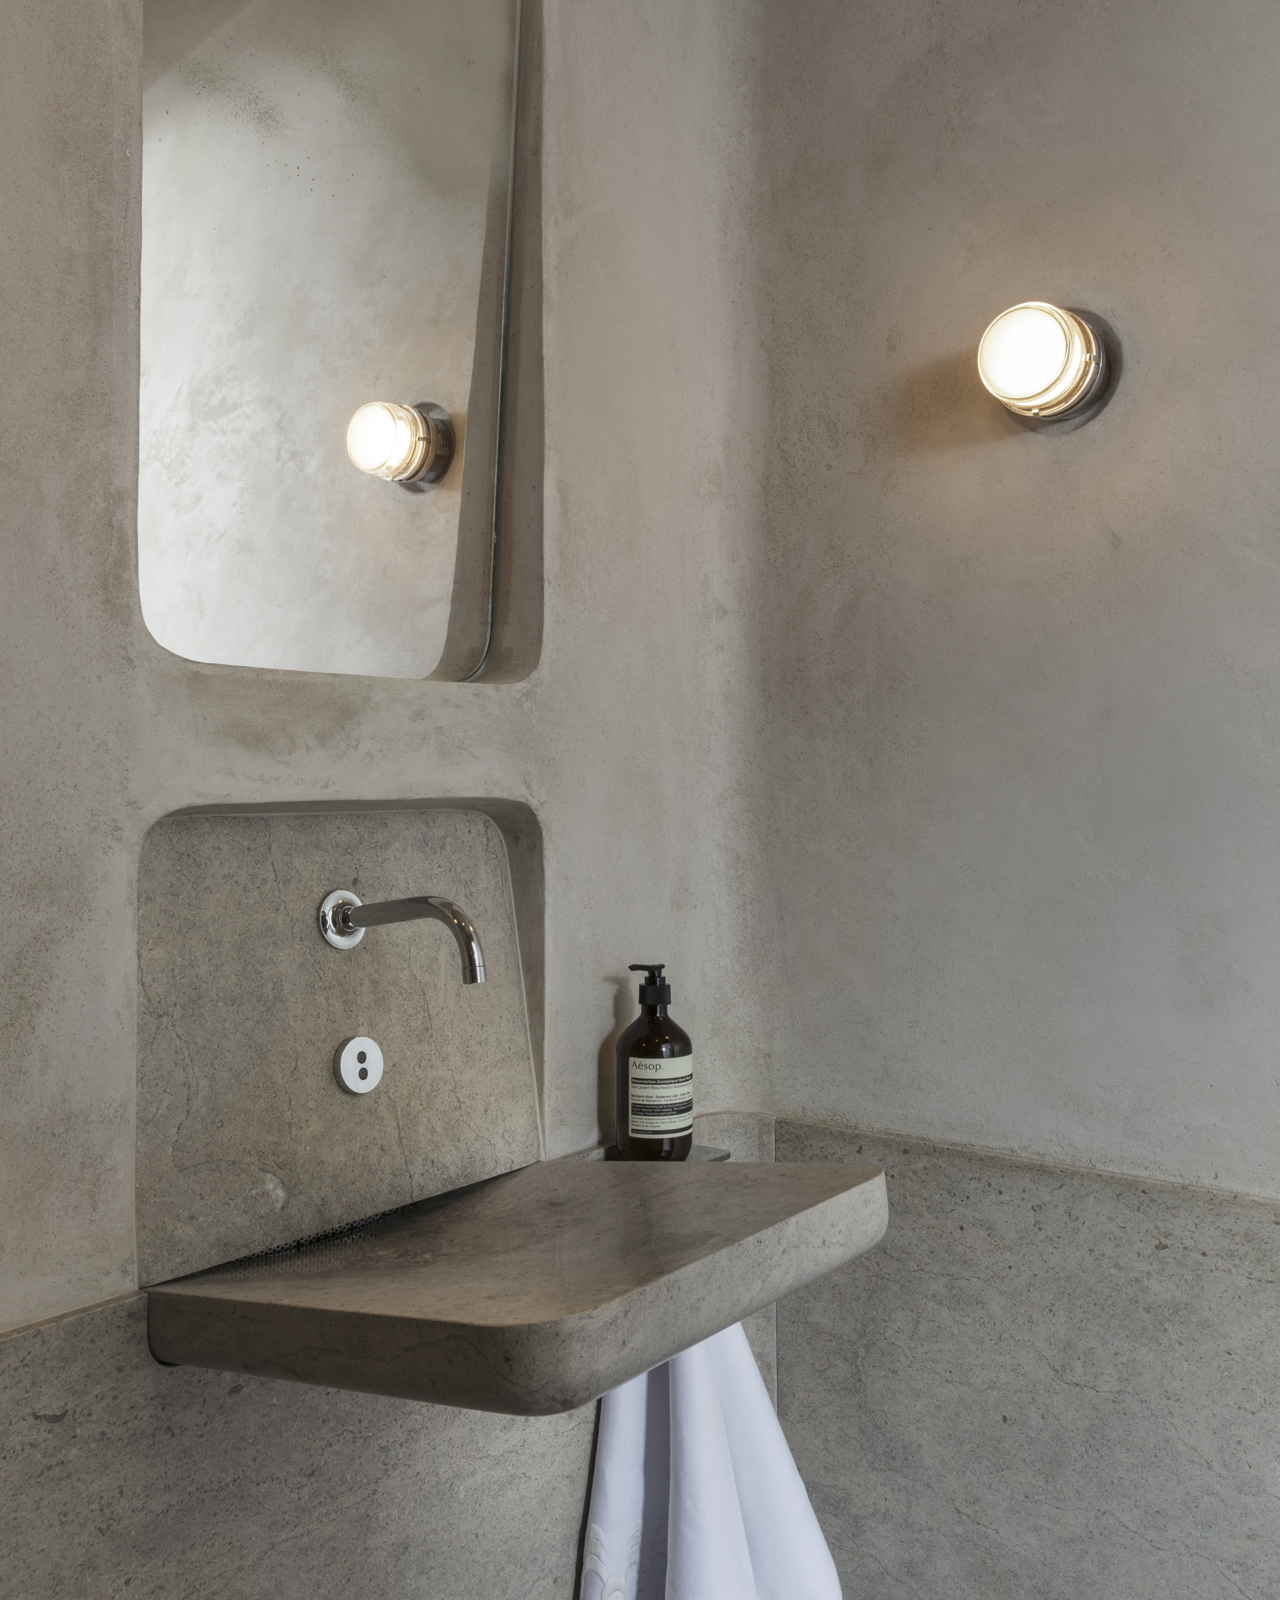 Inspiration for the Powder Room by David Bjorngaard and Stephen Stout came from trips to Rome and Milan.